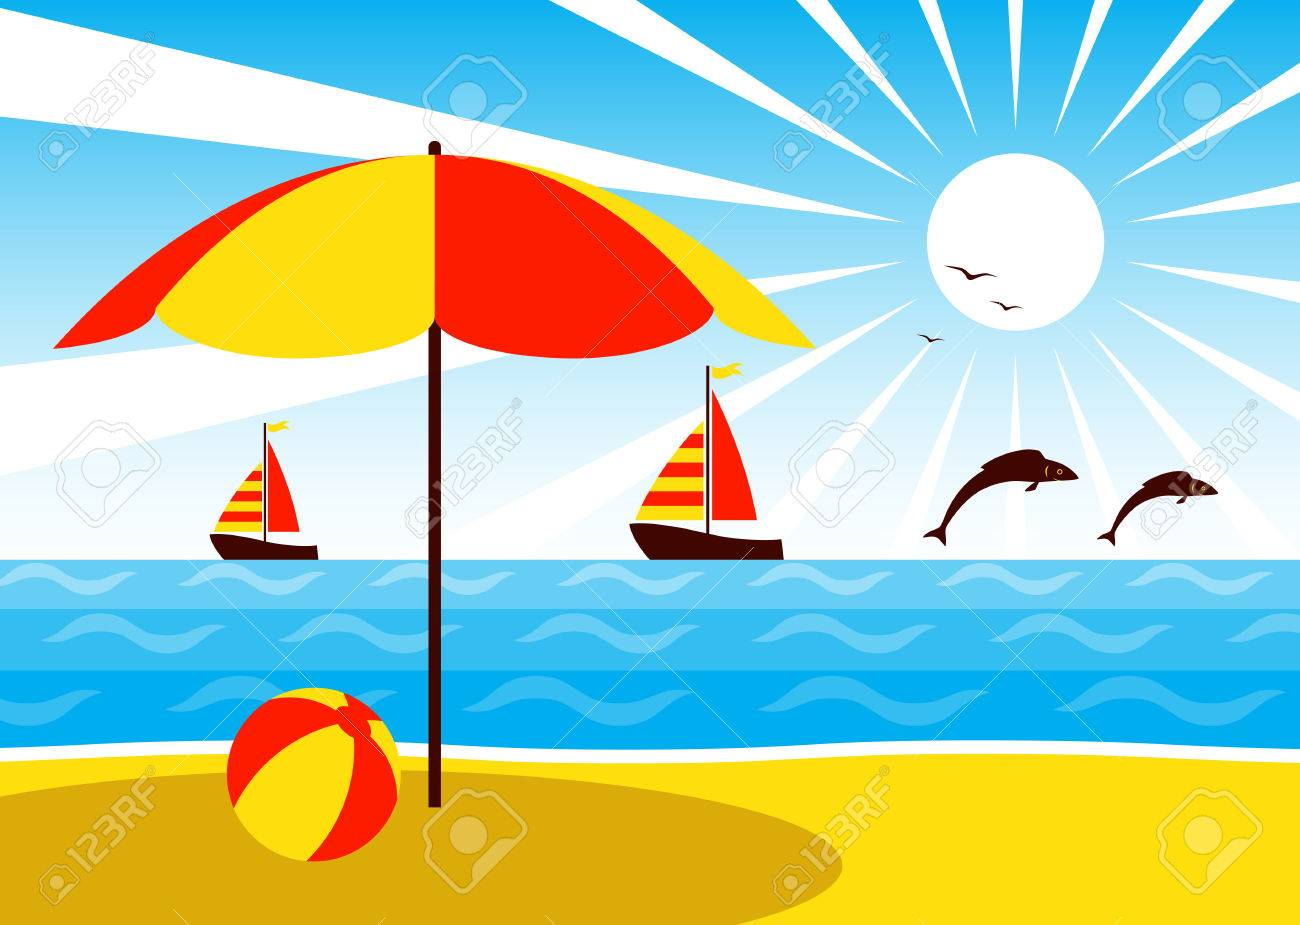 Sonnenschirm strand clipart  Vector Umbrella On The Beach, Sailboats And Fishes Jumping Over ...